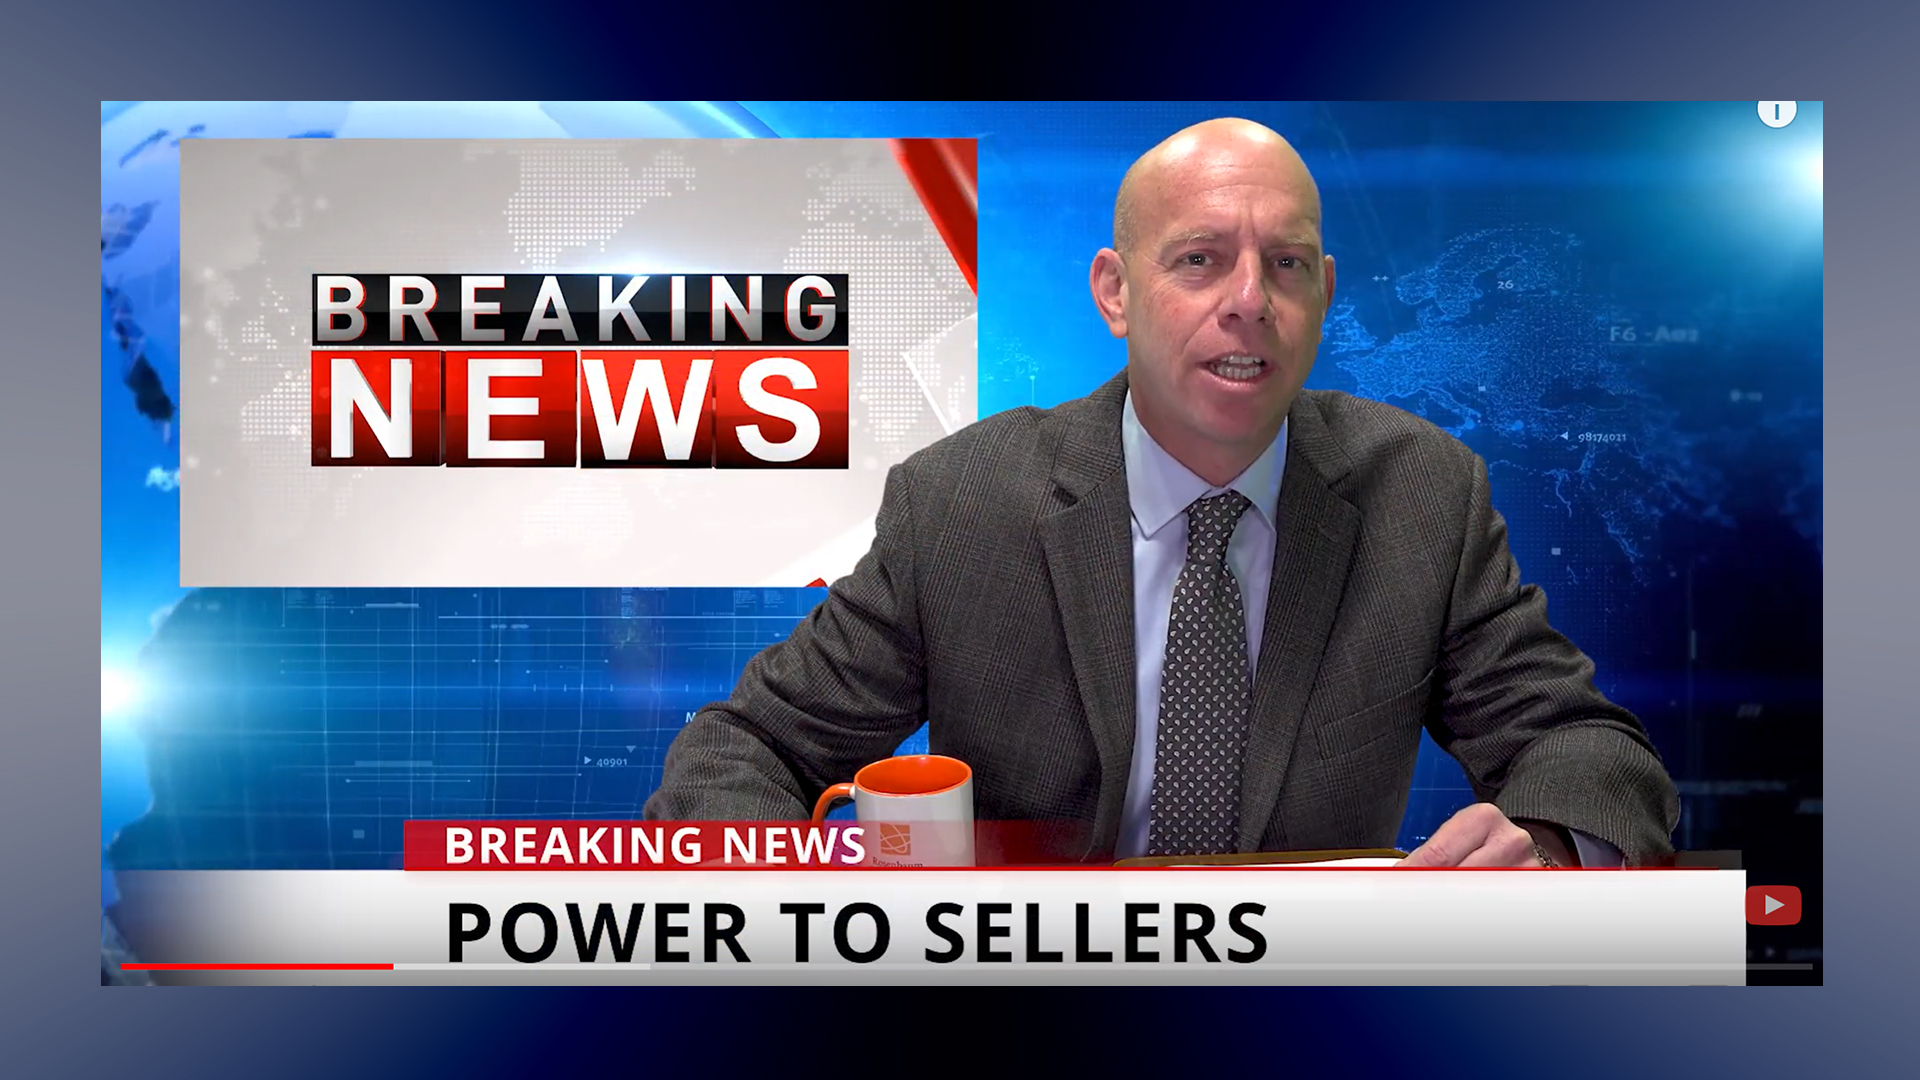 Amazon Sellers' News 12/30/19 - POWER TO AMAZON SELLERS, Related Accounts & Avoid Selling HEMP-CBD Products That Cause Suspensions